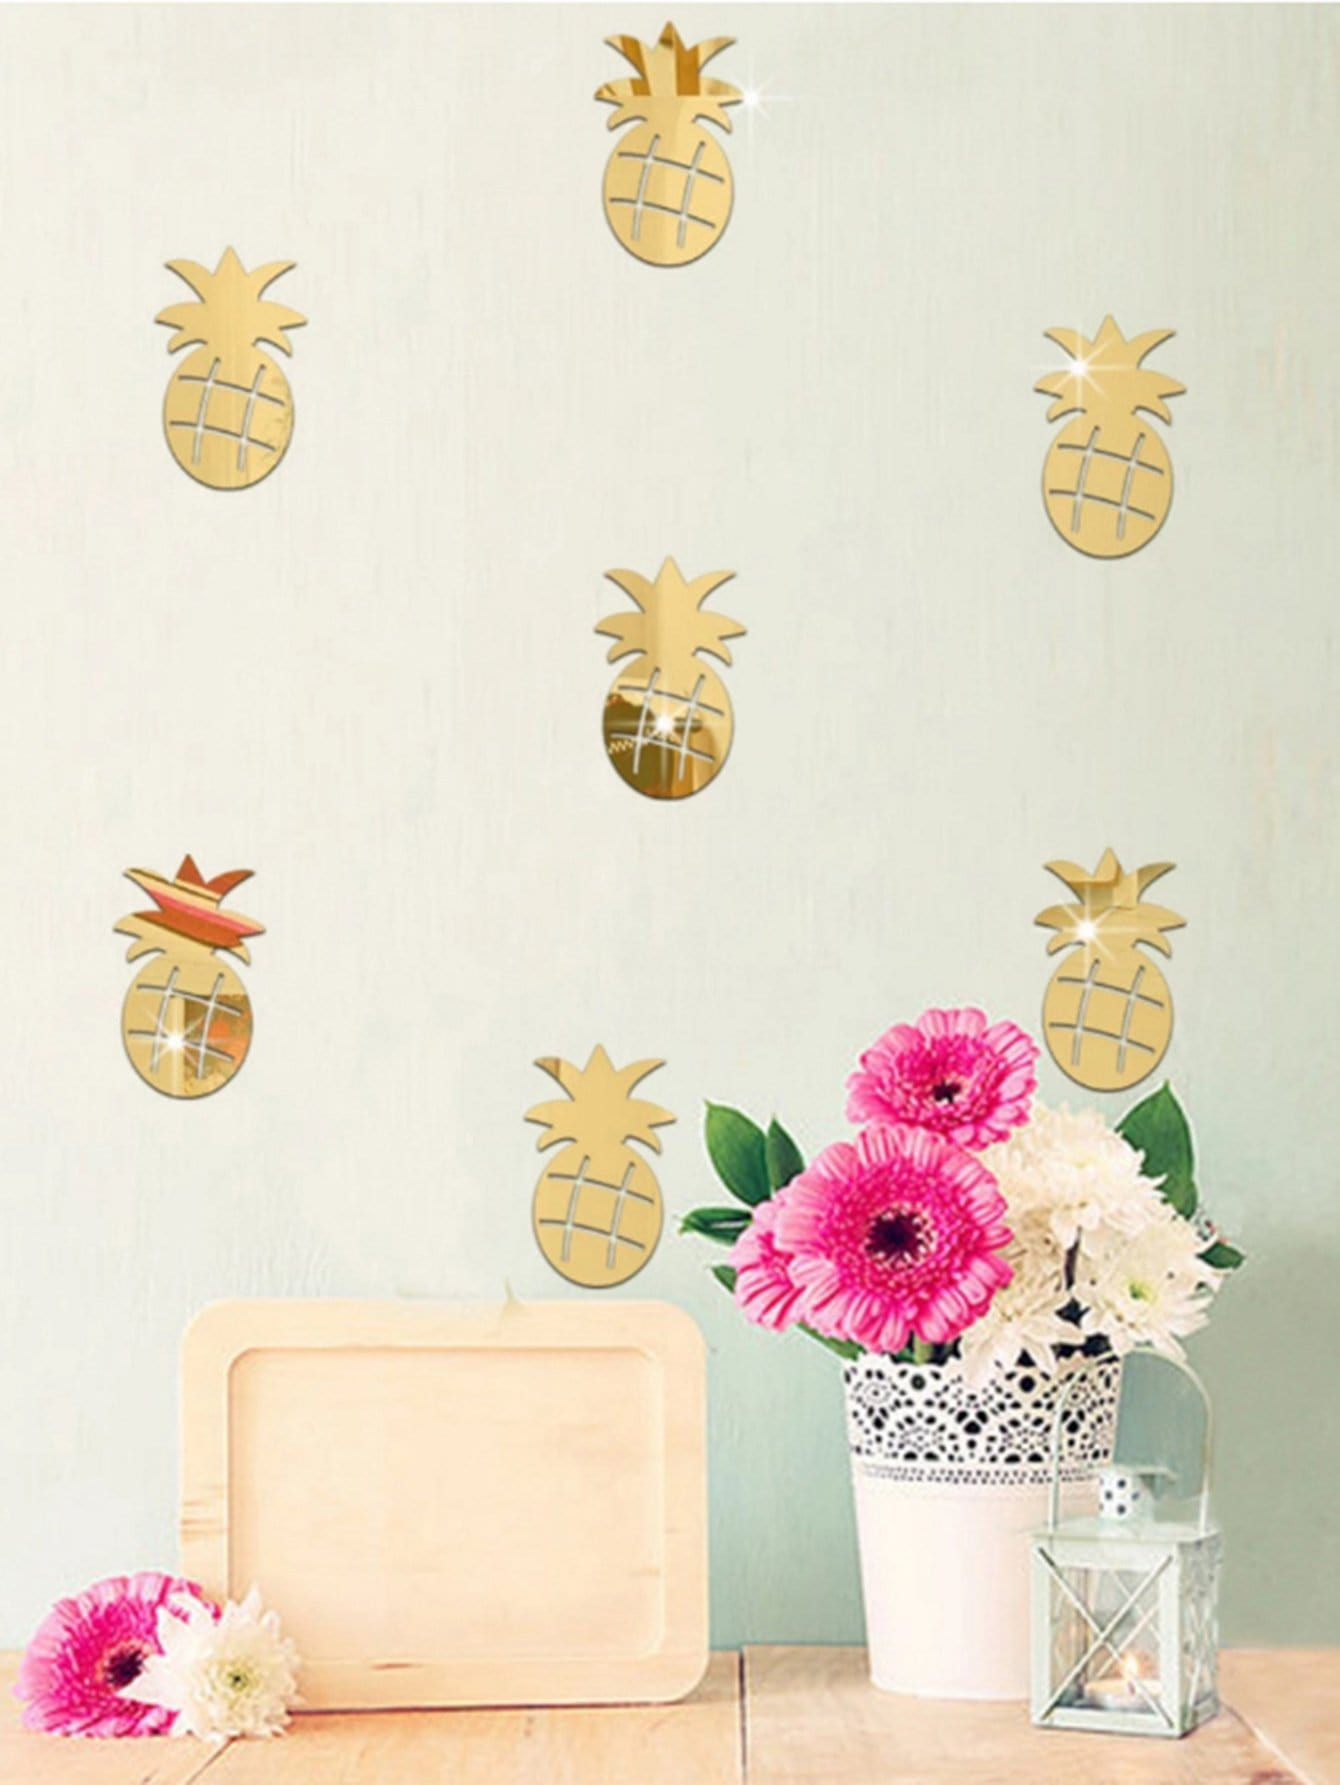 Pineapple Mirror Wall Sticker Set 24pcs 14 wxga glossy laptop led screen for hp pavilion g4 2149se